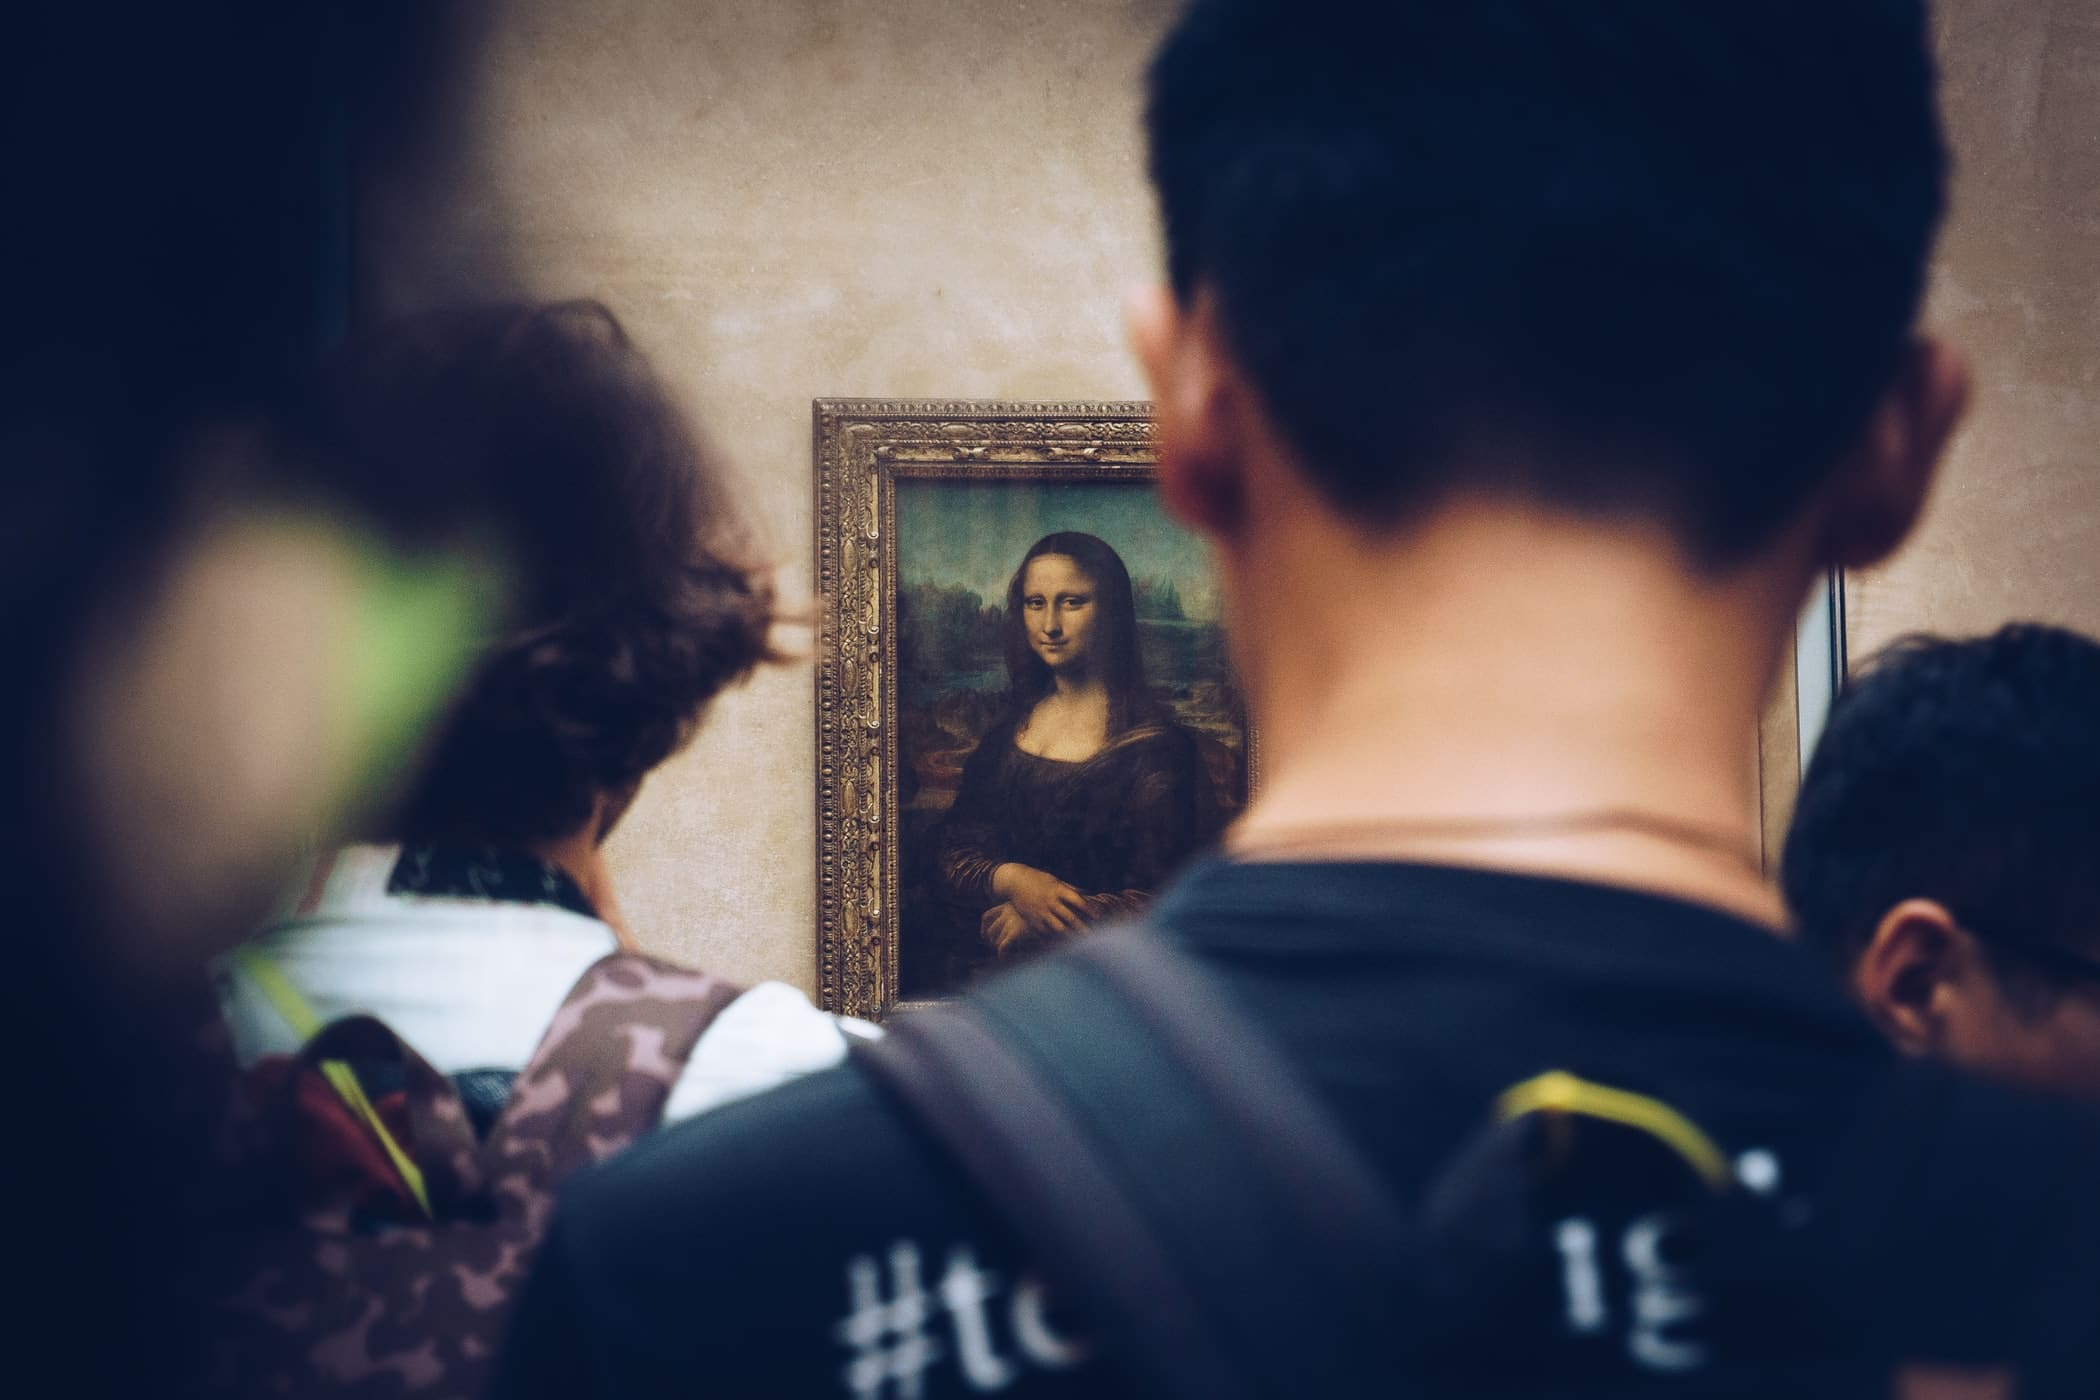 A painting of The Mona Lisa